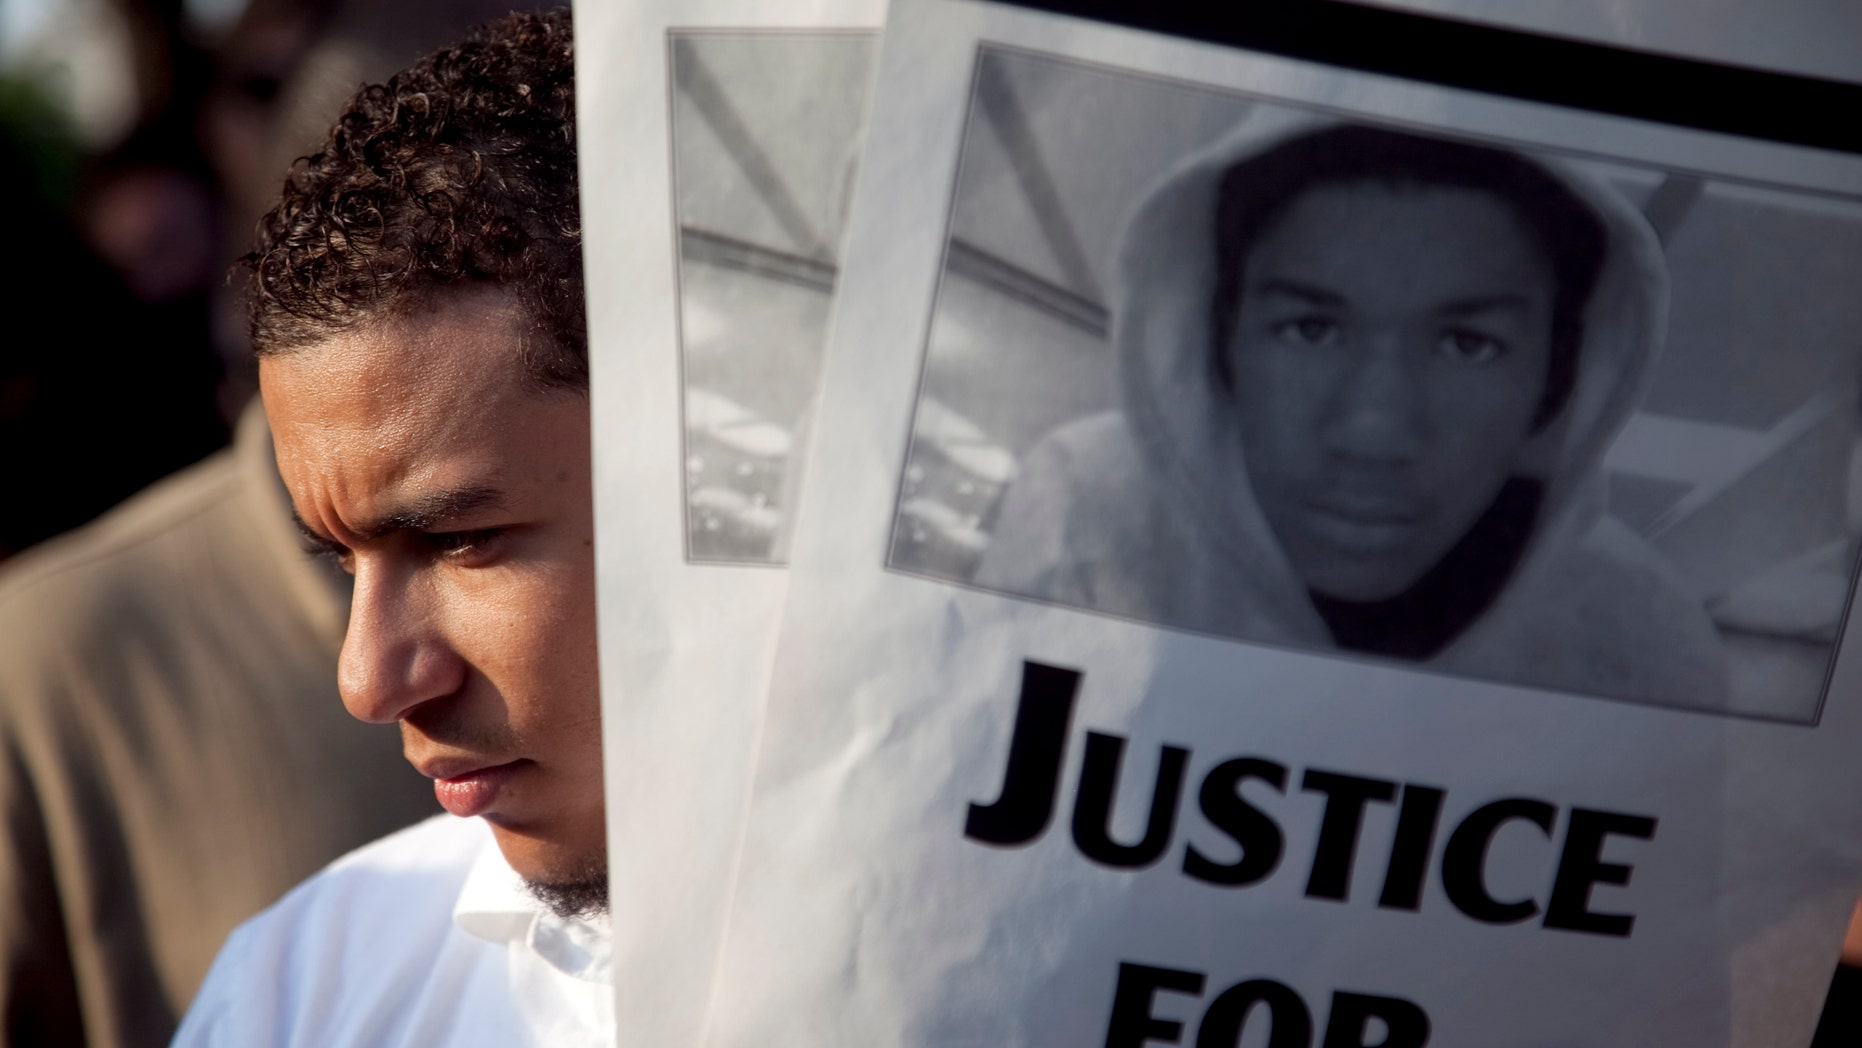 A protestor holds flyers during a rally outside the Texas State Capitol in Austin on Tuesday depicting Travyon Martin, the unarmed Florida teen killed last month.  The case has become a racial flashpoint that has civil rights leaders and others leading  protests in Florida and around the country. (AP Photo/Thomas Allison, Daily Texan)